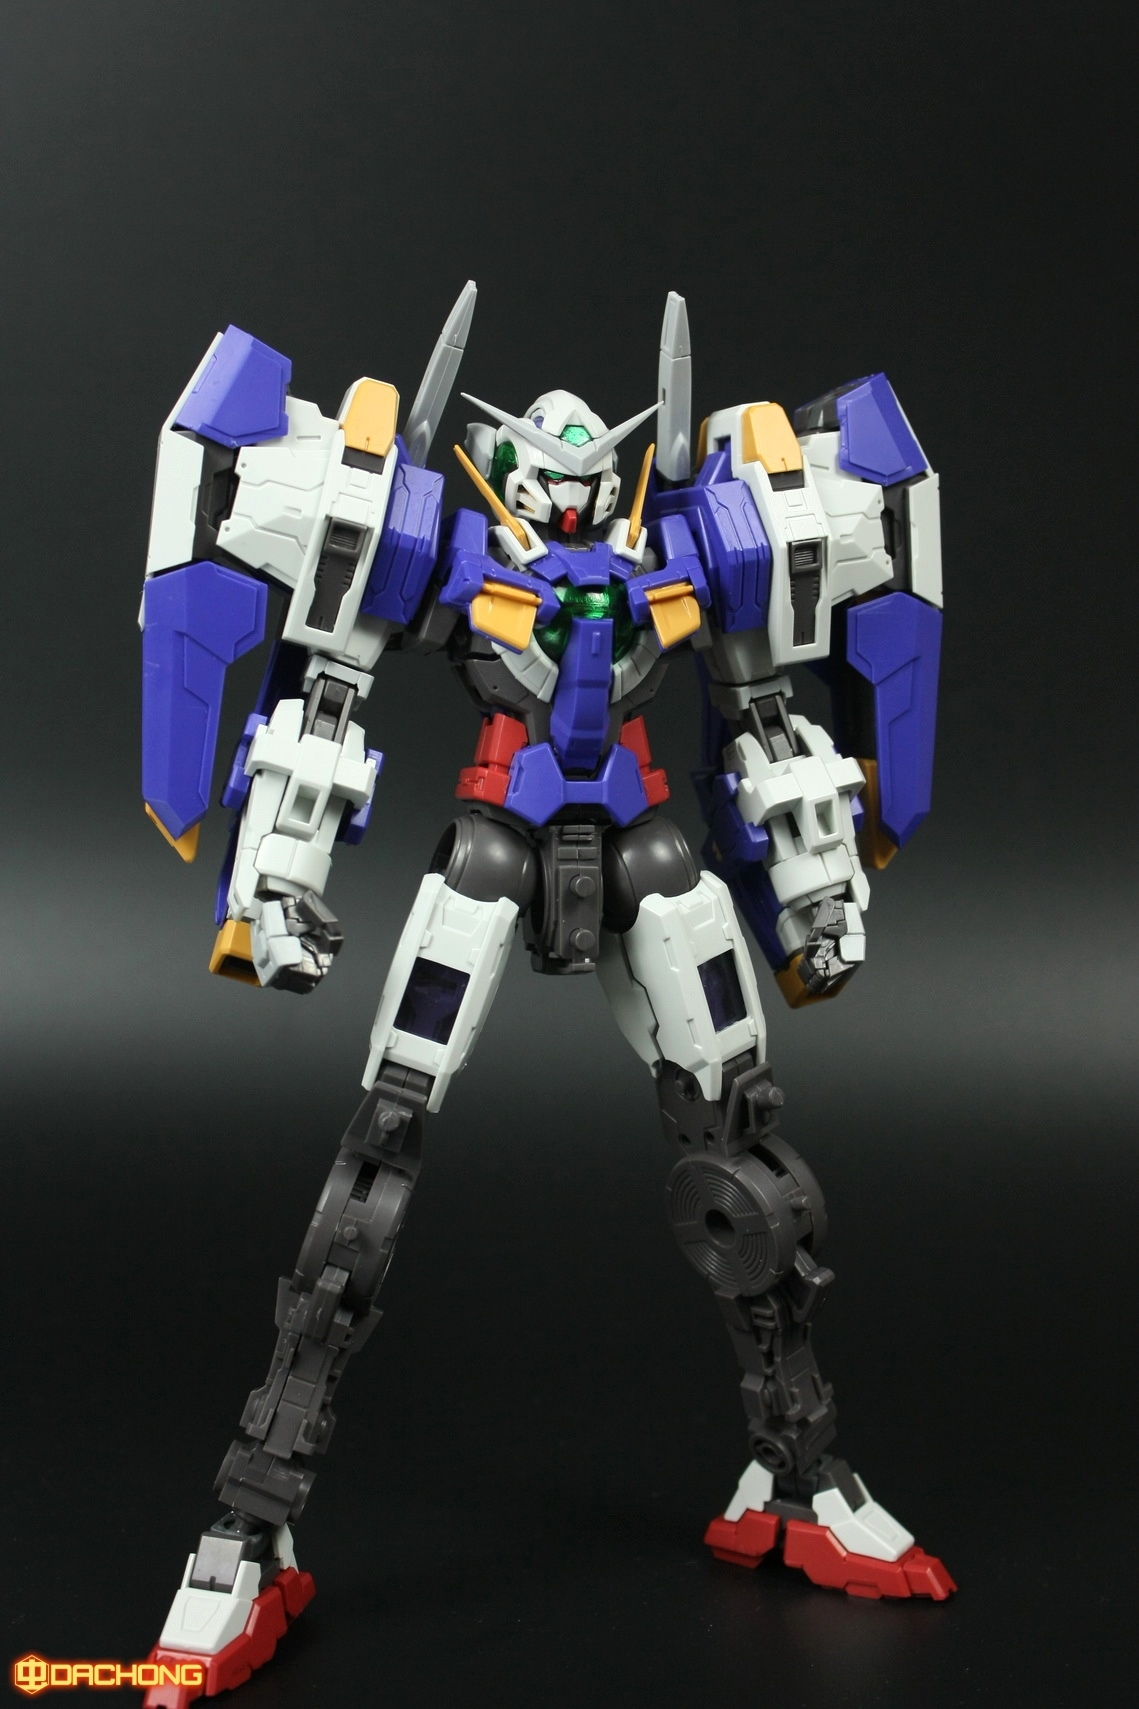 S254_MG_exia_HS_review_inask_054.jpg